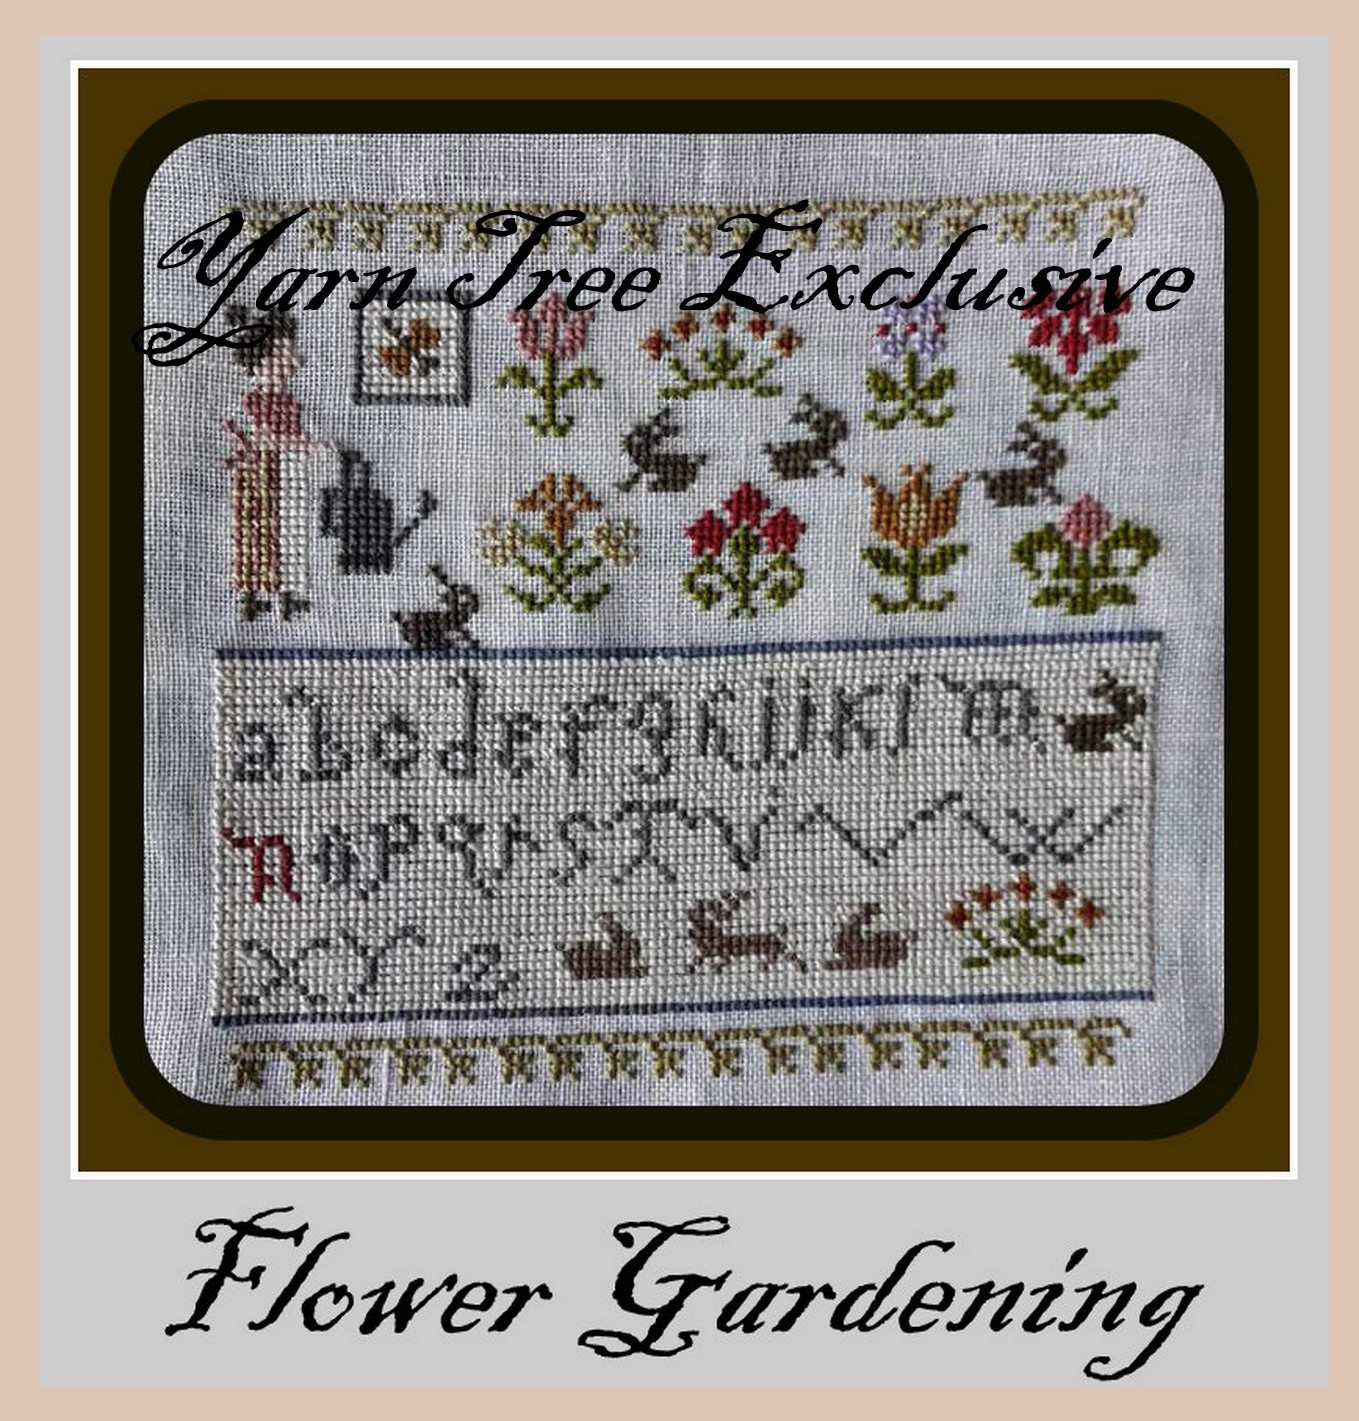 Flower Gardening - Nikys Creations